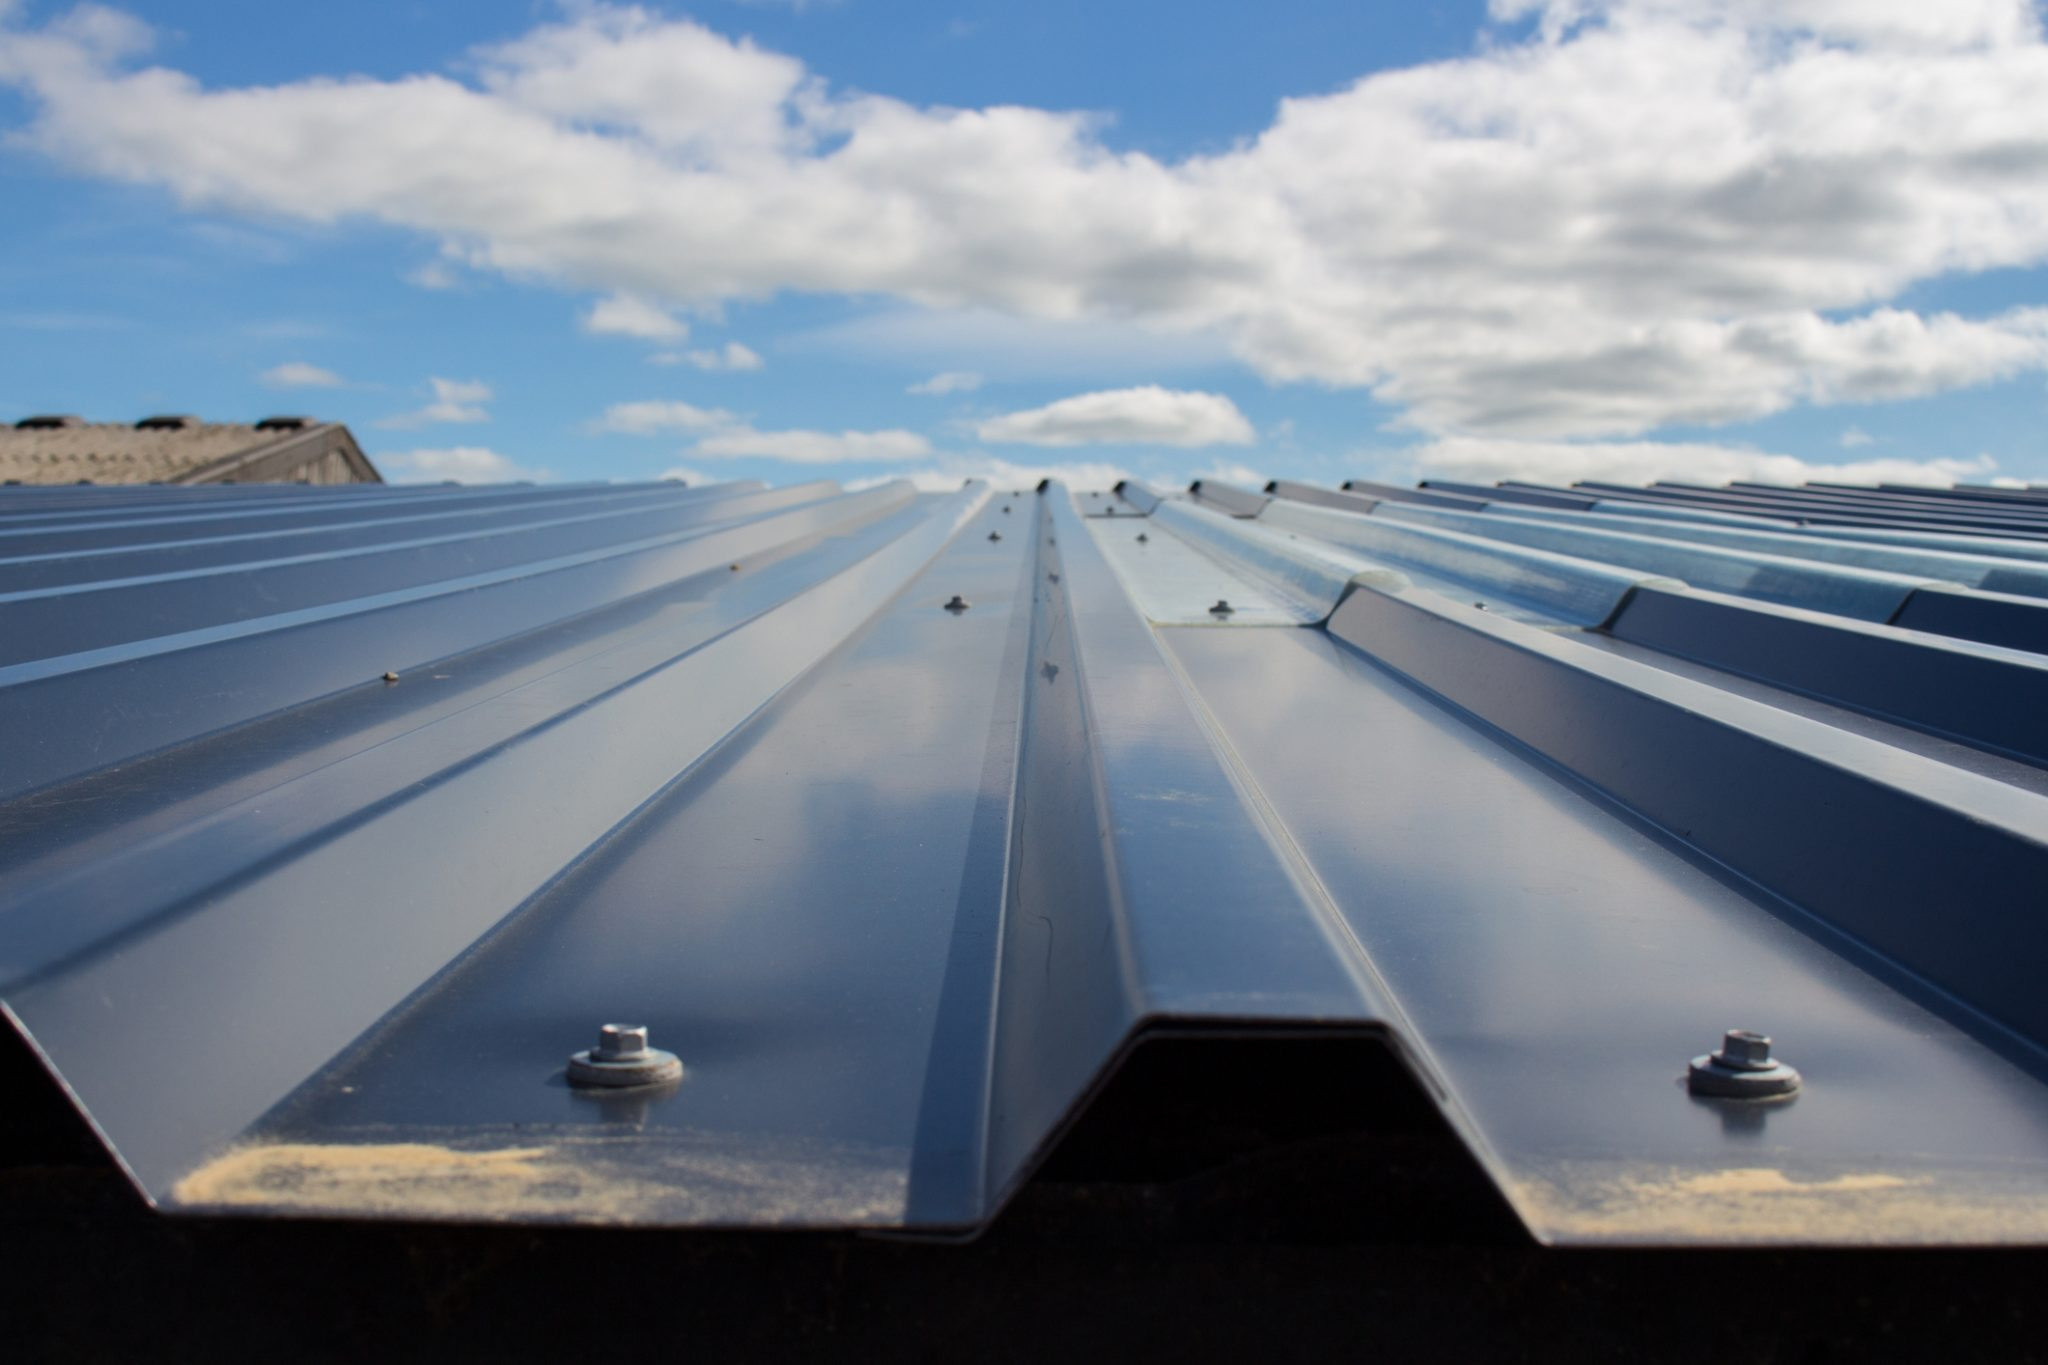 Metal Roofing Chilliwack Building Supply